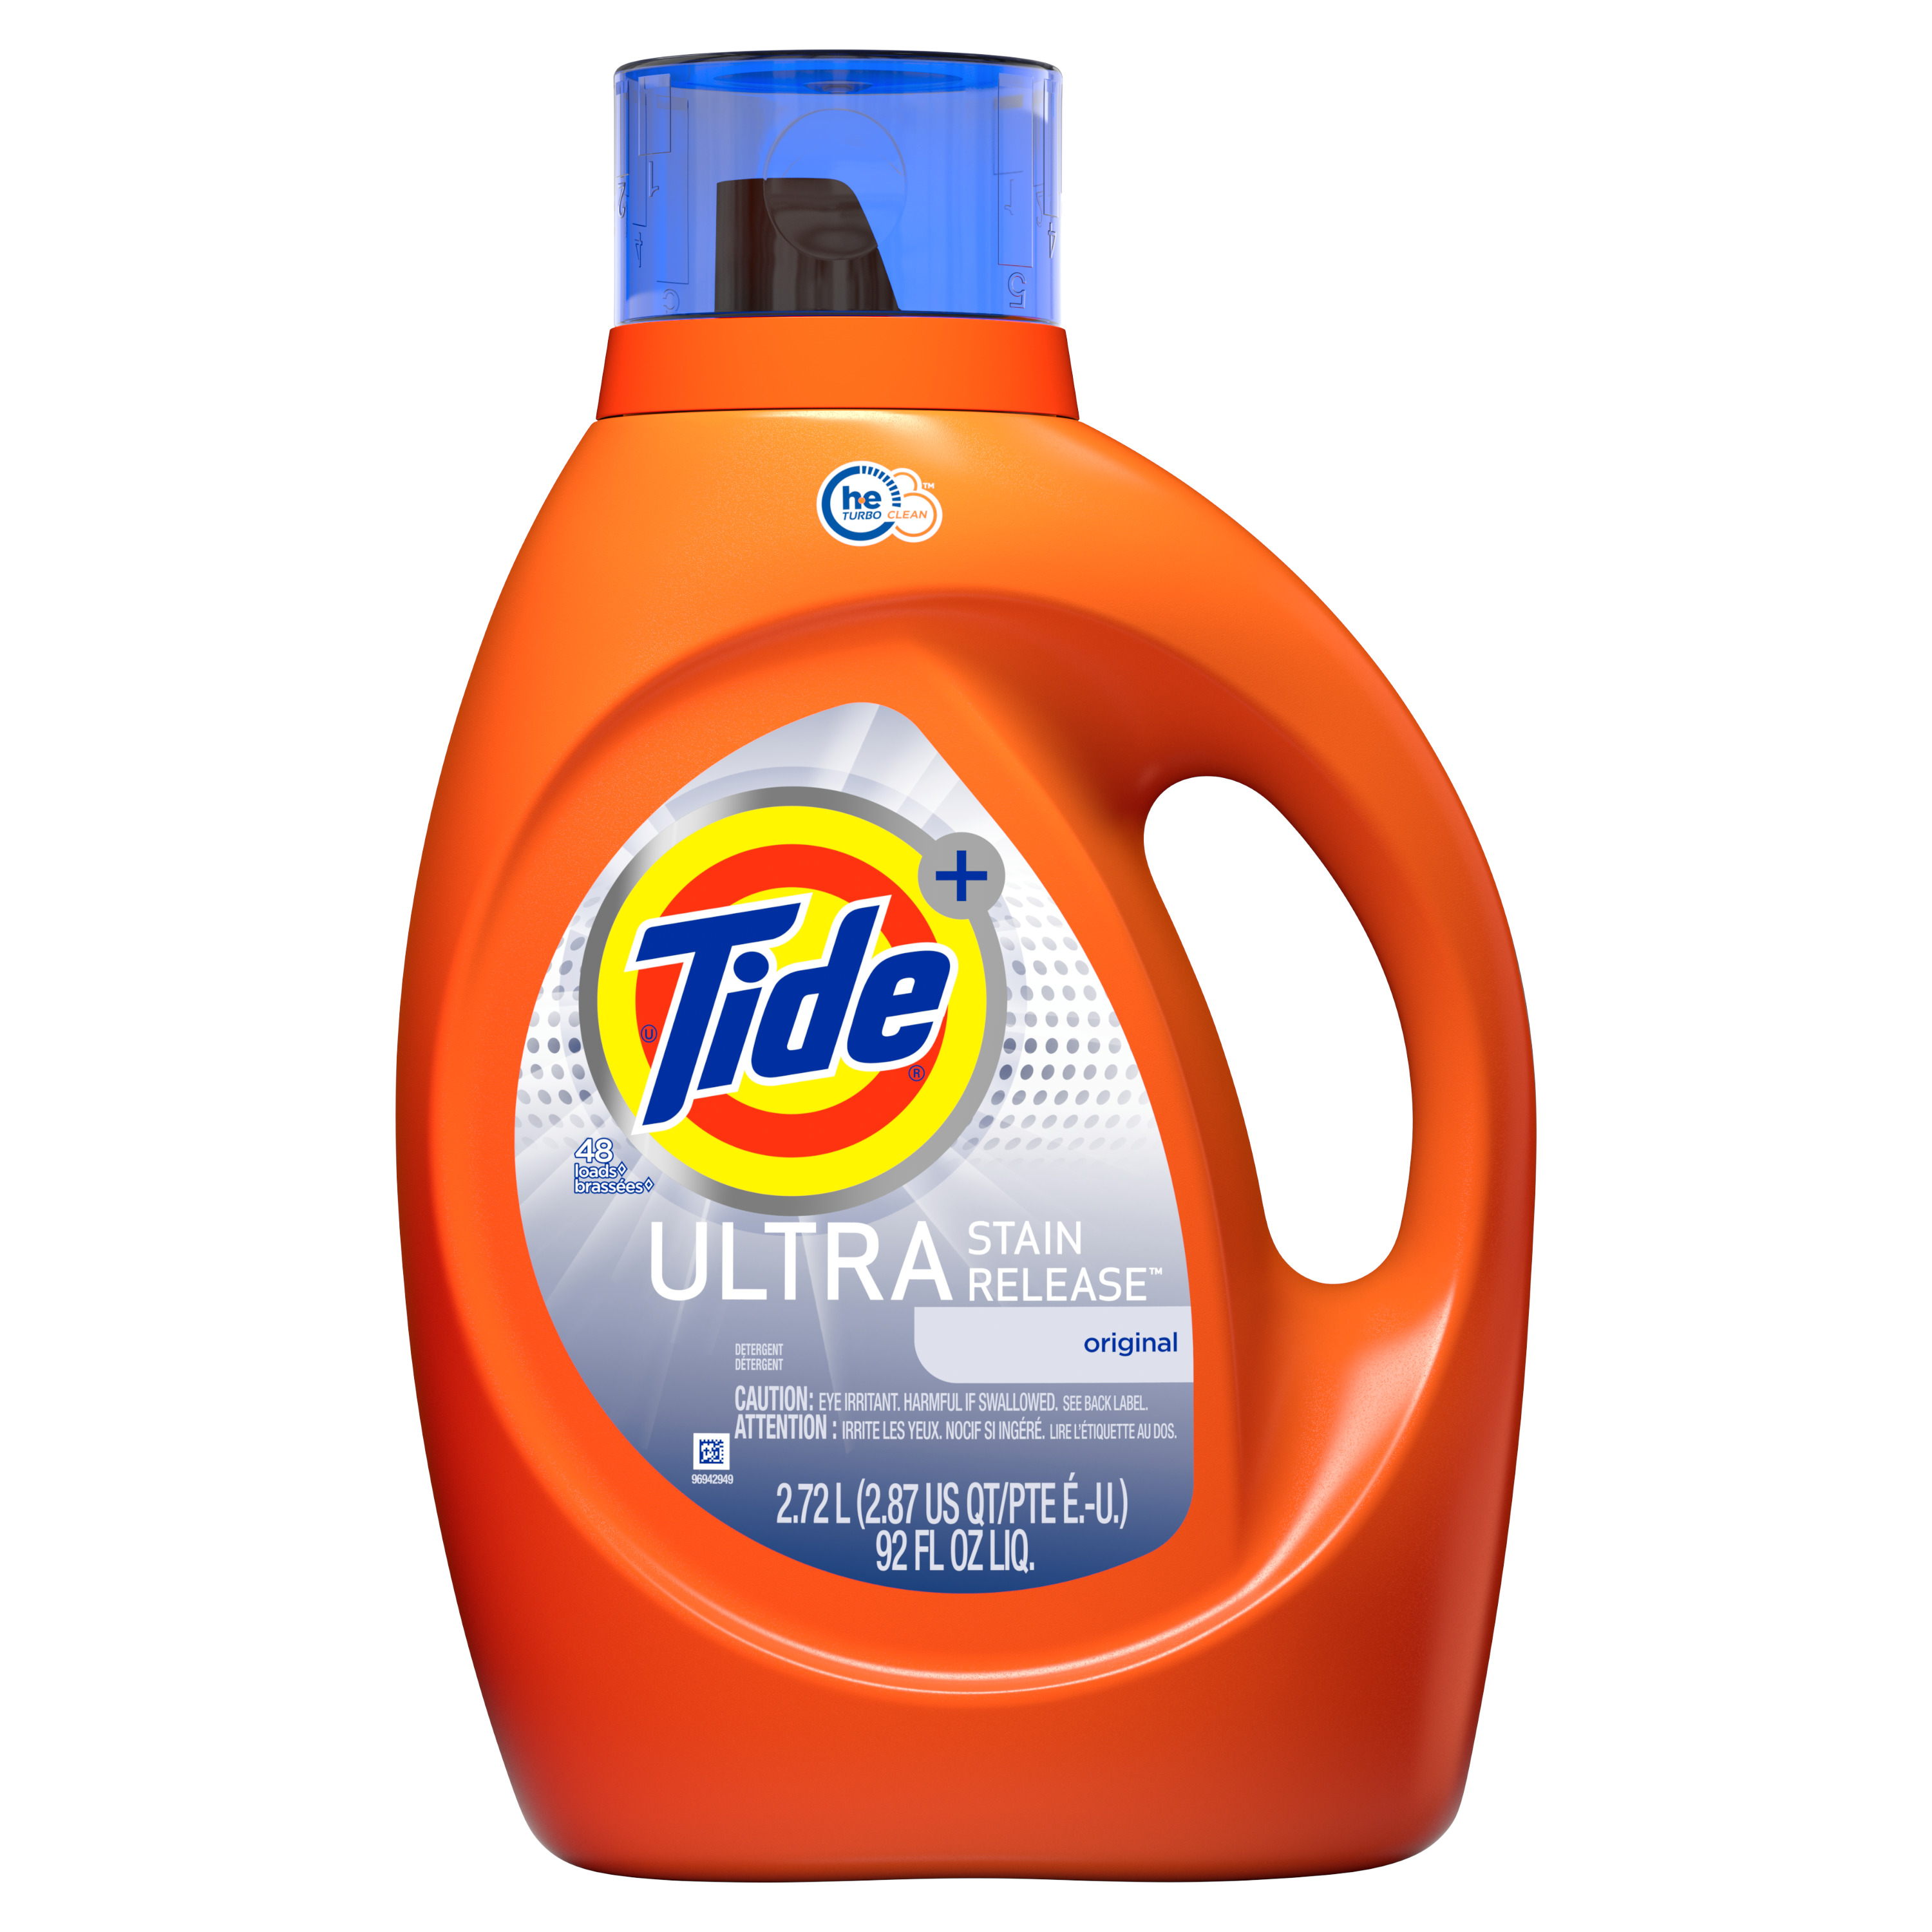 Tide Plus Ultra 2.72L 92FL OZ